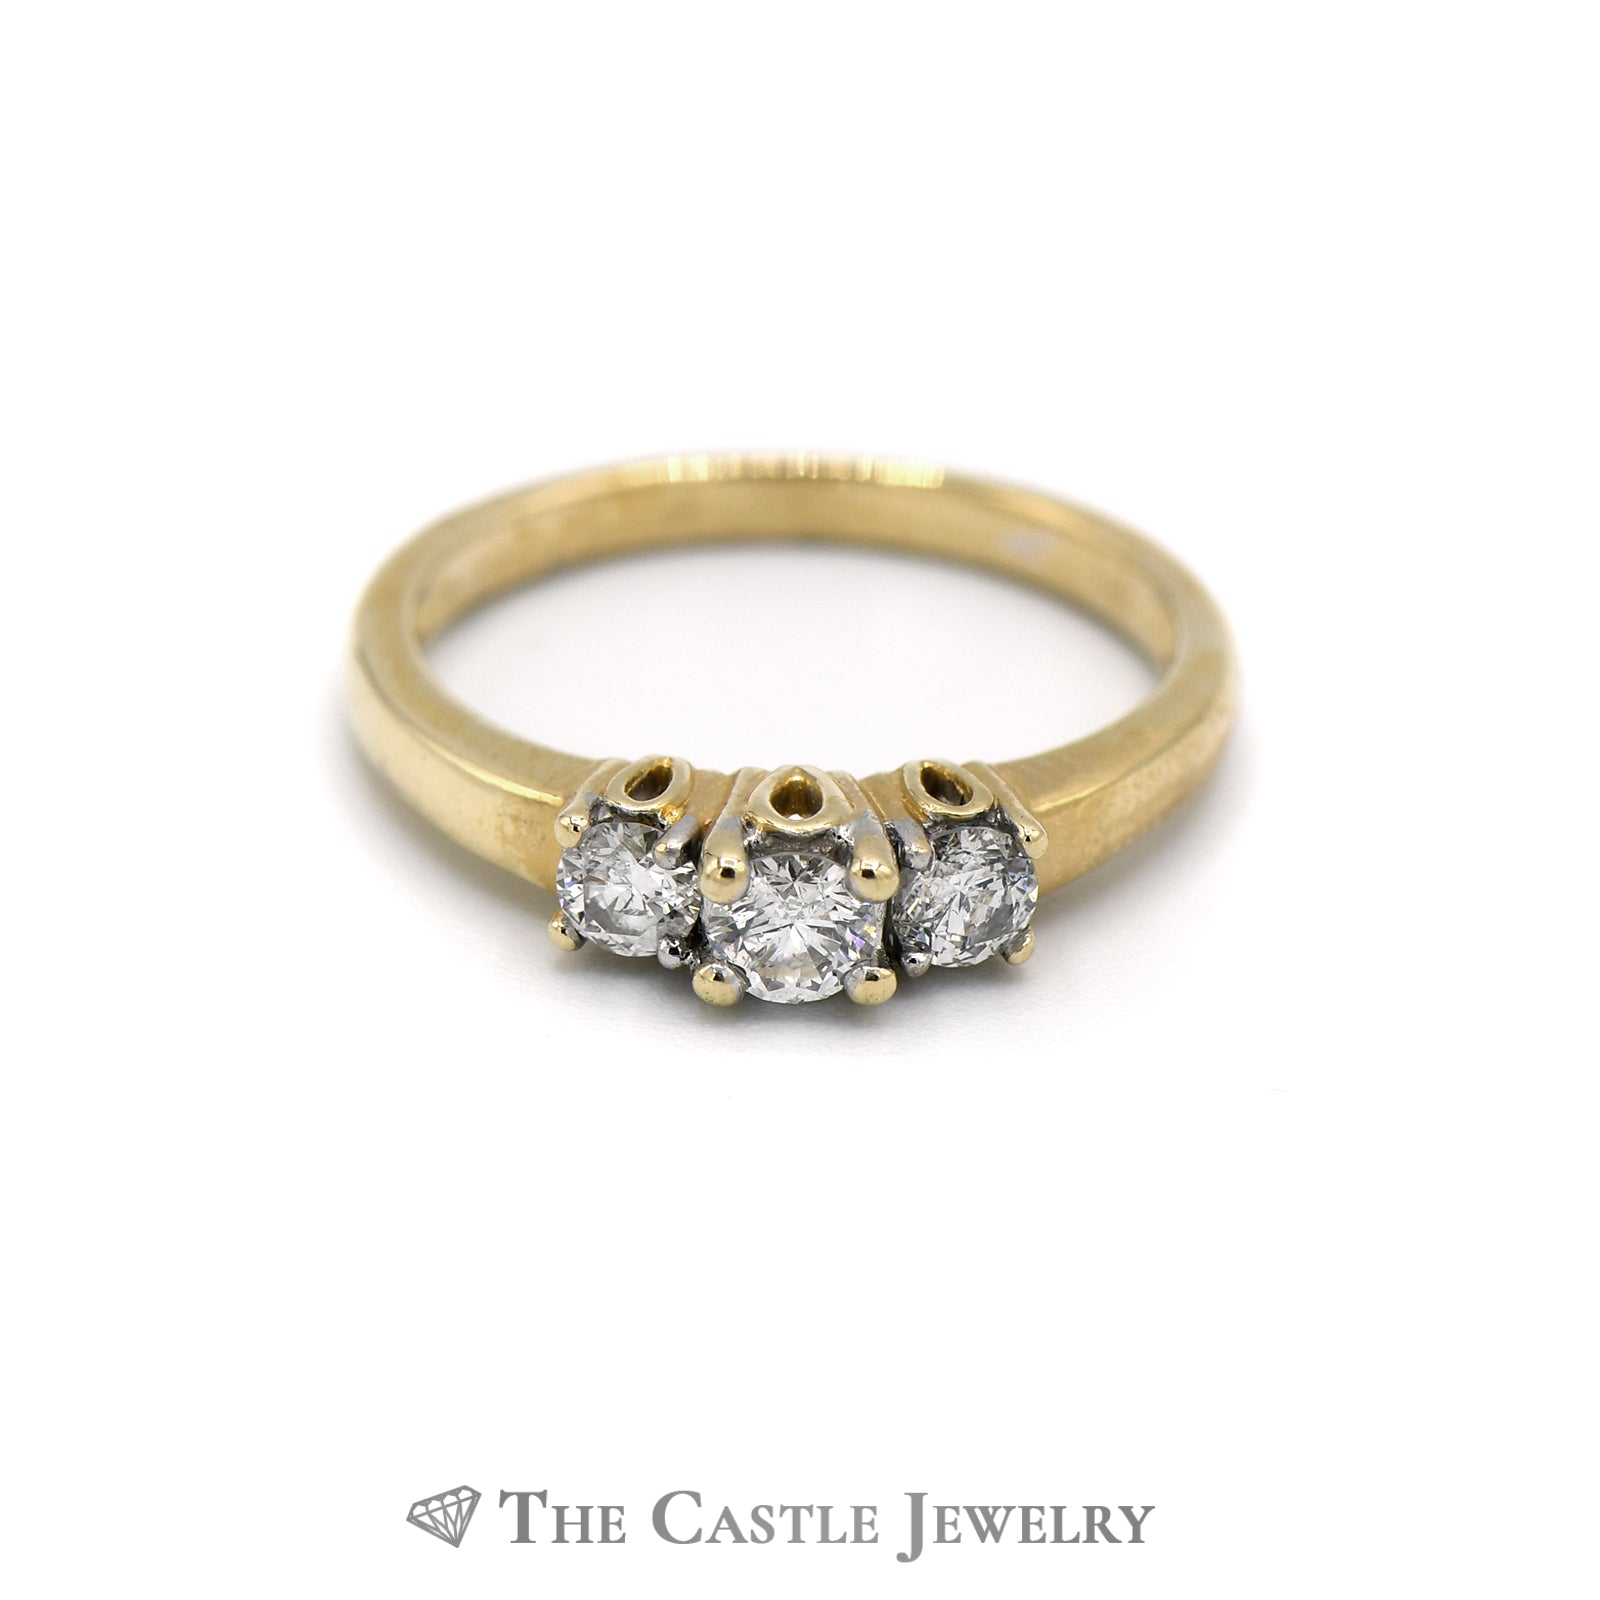 .50CTTW DeBeers Style 14KT Yellow Gold Diamond Ring